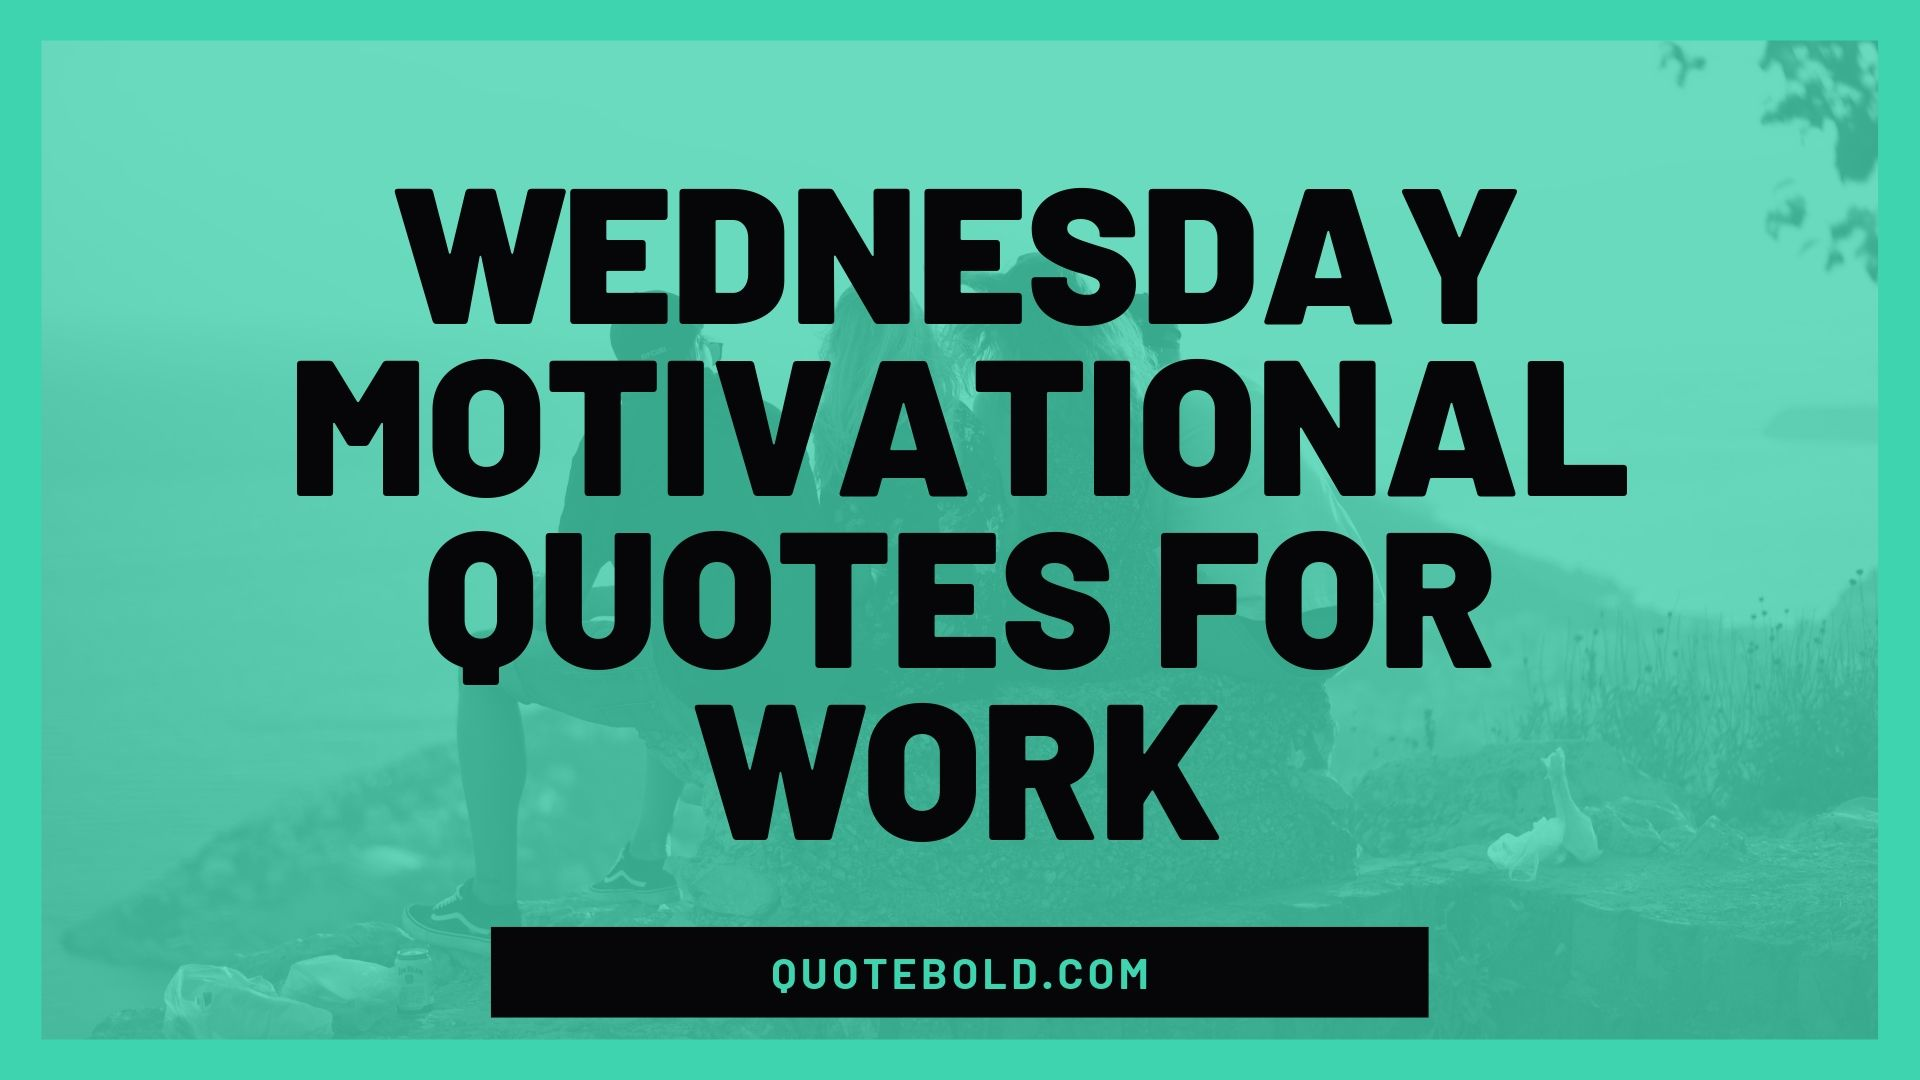 35 Wednesday Motivational Quotes For Work Images Quotebold